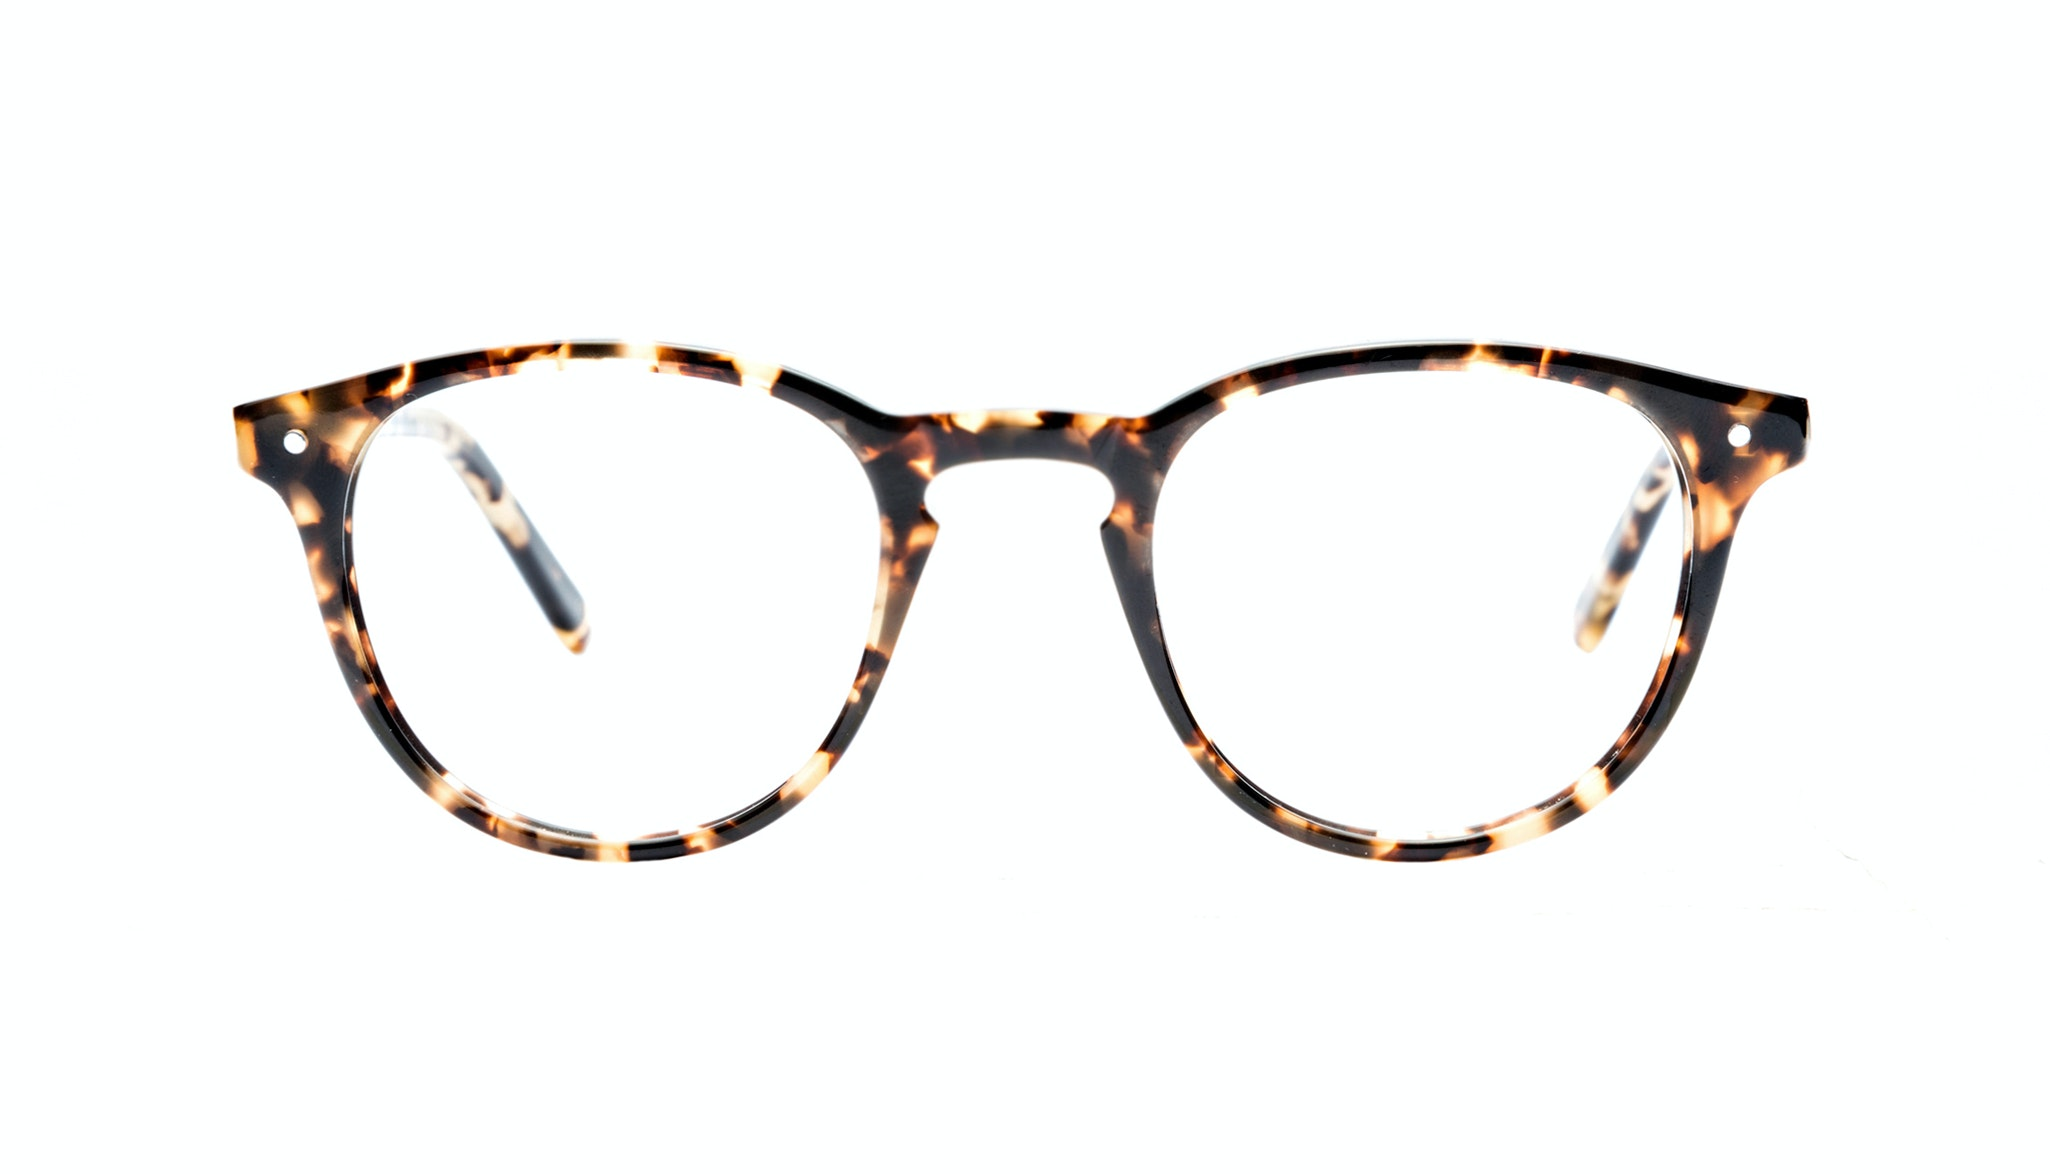 Affordable Fashion Glasses Round Eyeglasses Men Women Cult Dark Tortoise Front